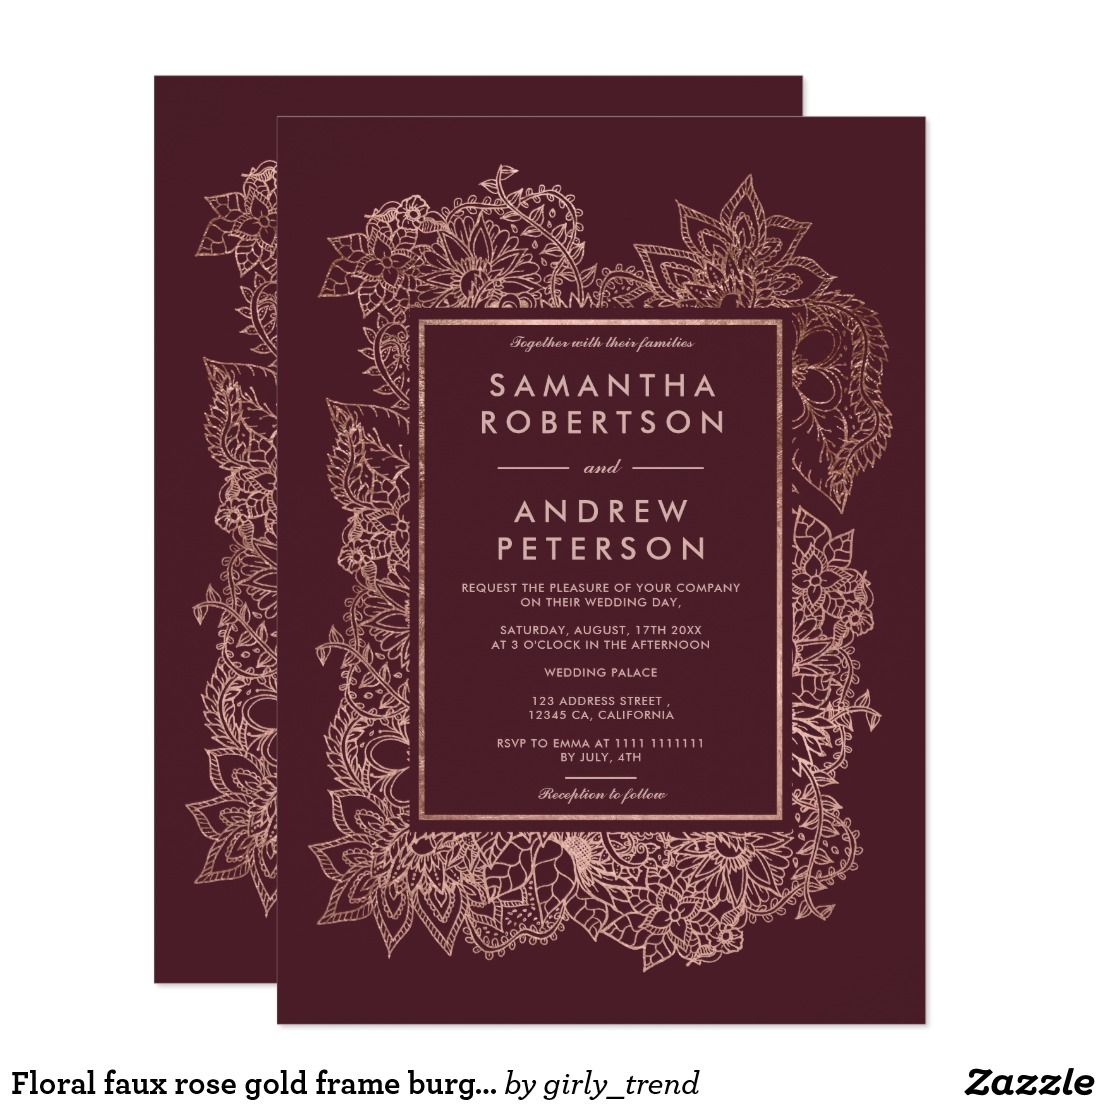 Floral faux rose gold frame burgundy wedding invitation | Wedding ...